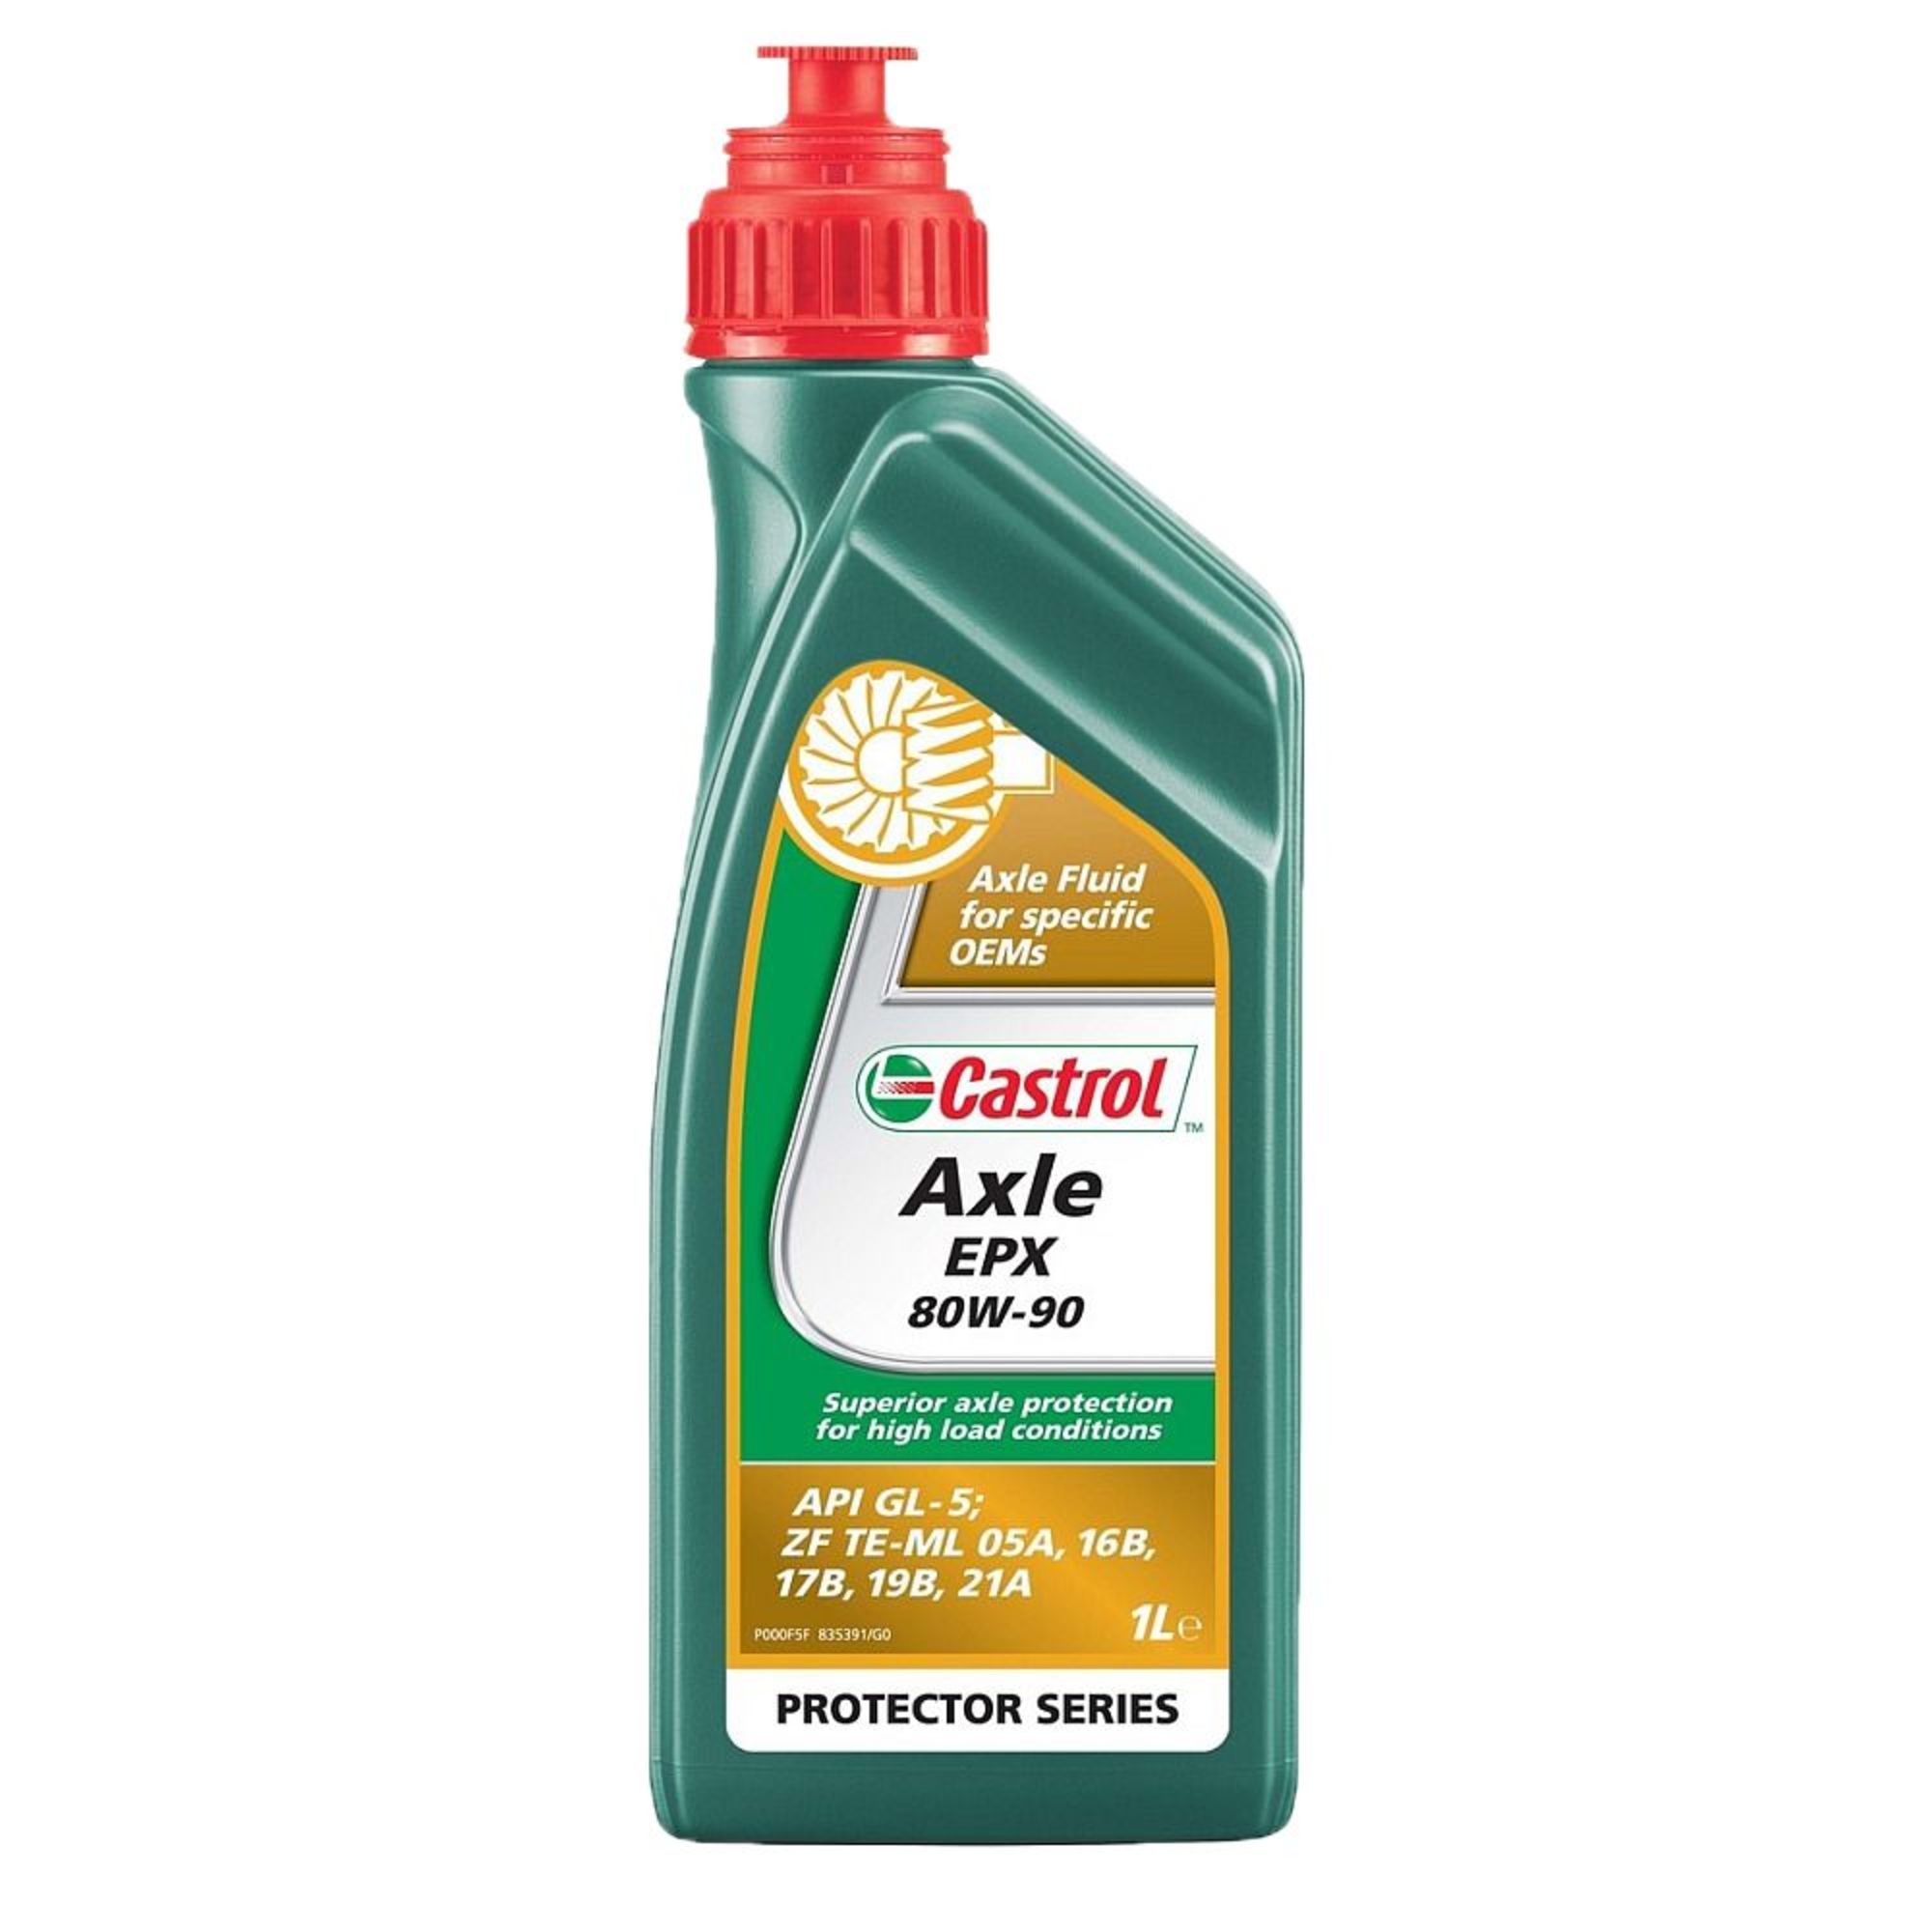 castrol axle epx 80w90 gl5 1l | 25216